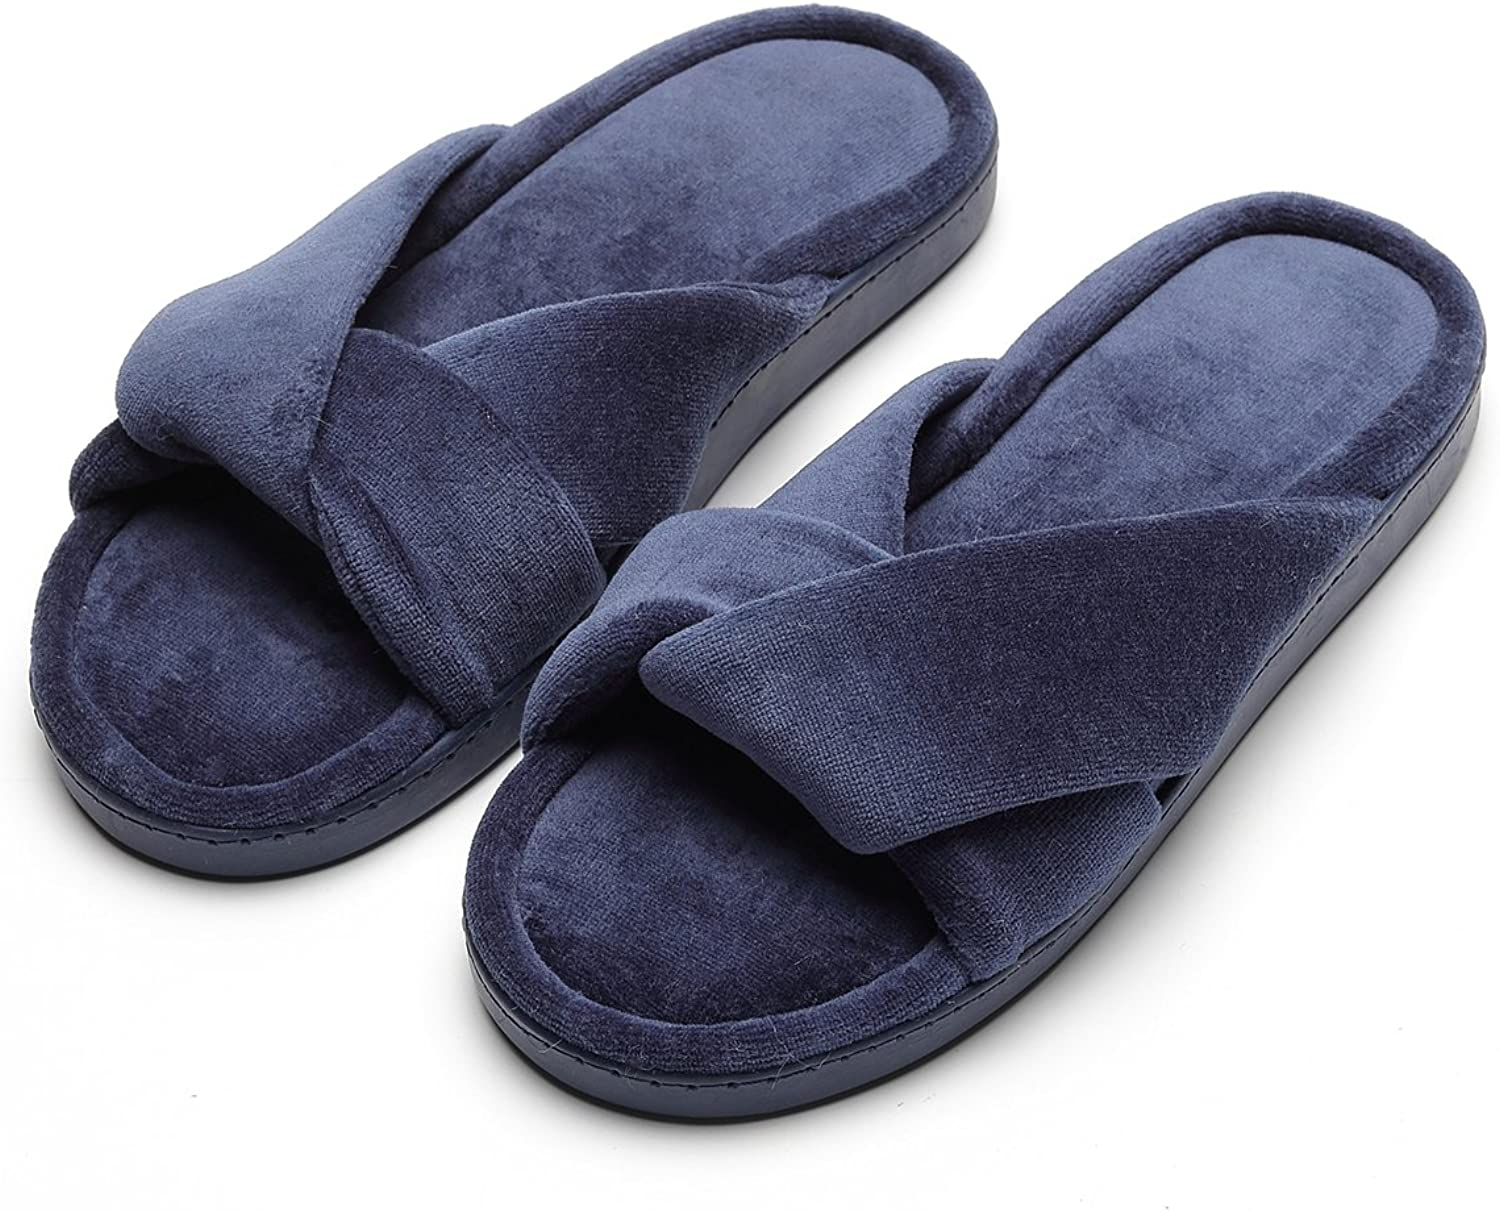 Women's Slippers Comfort Cozy Velvet Memory Foam Slippers for Spa Home Bedroom